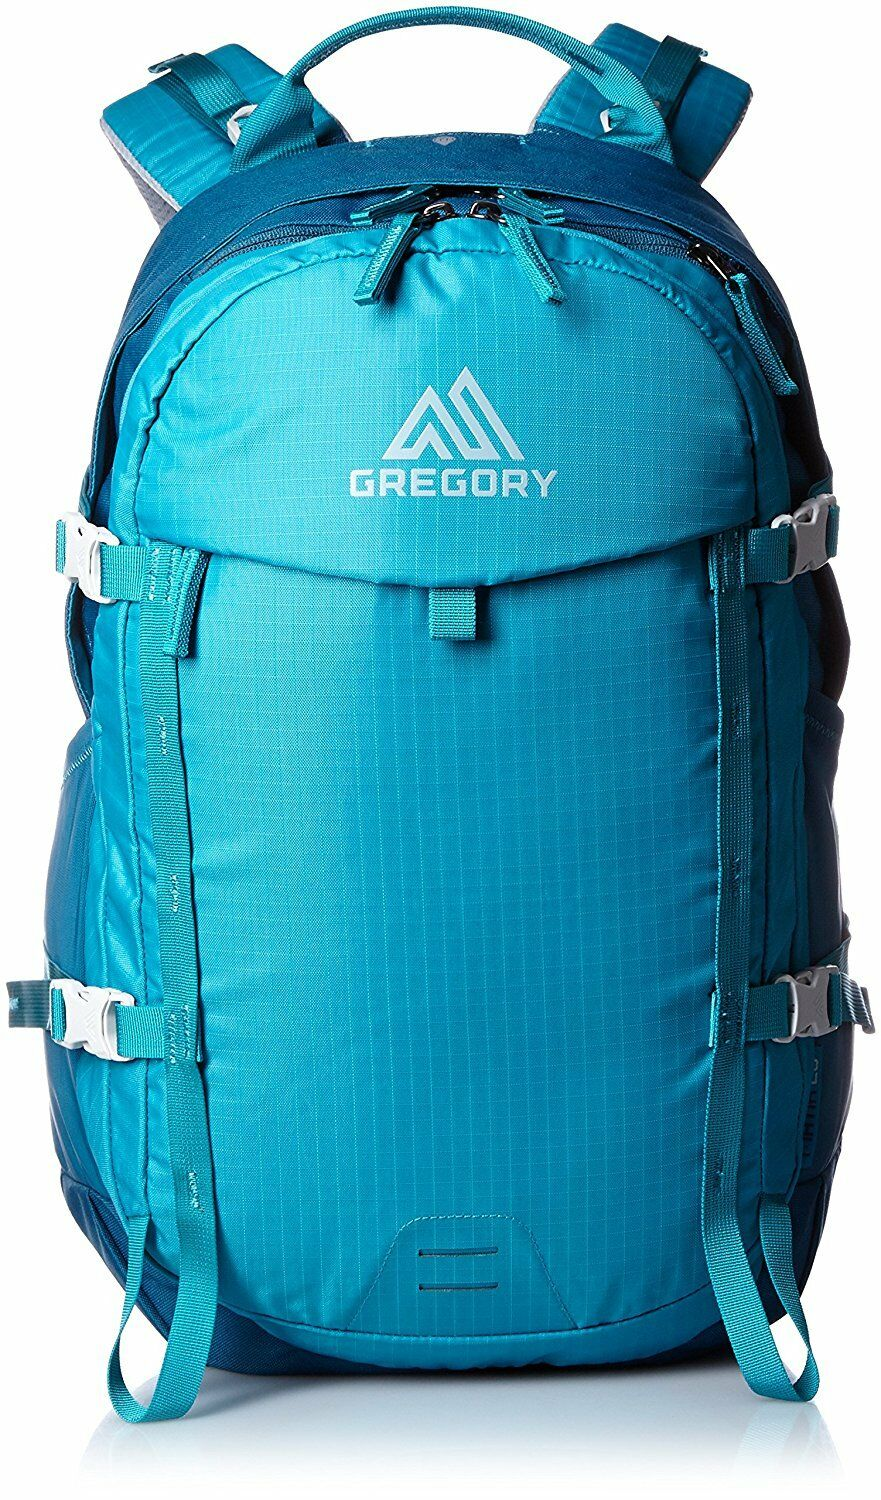 43% OFF   NEW GREGORY MATIA 28, ONE SIZE, DEEP TURQUIOSE.